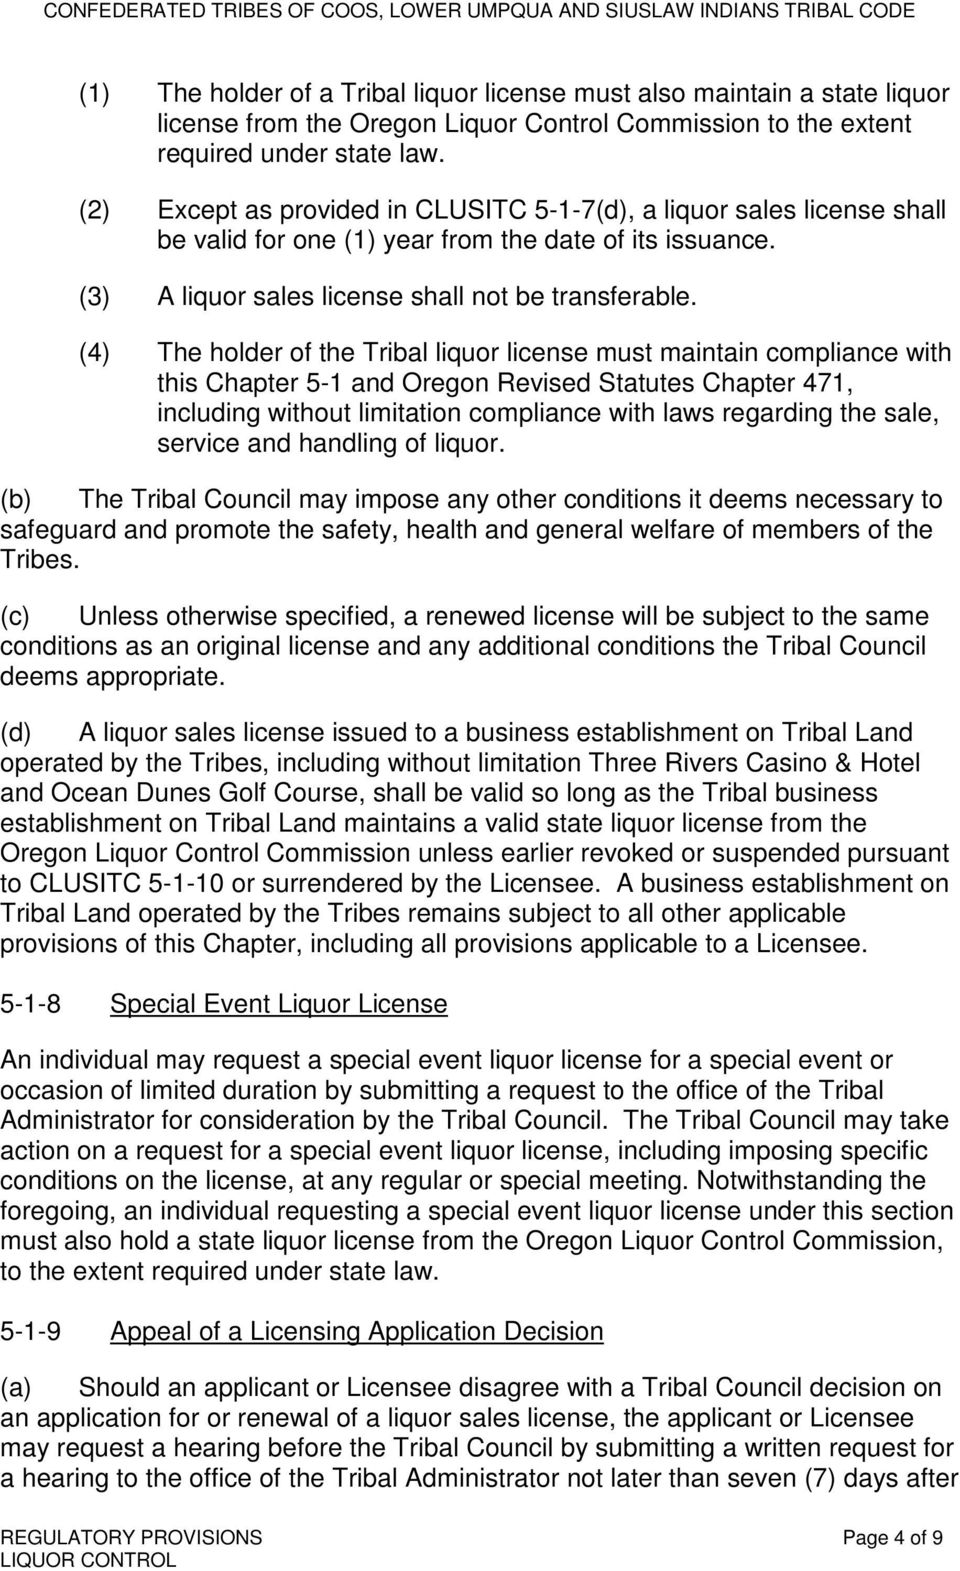 (4) The holder of the Tribal liquor license must maintain compliance with this Chapter 5-1 and Oregon Revised Statutes Chapter 471, including without limitation compliance with laws regarding the